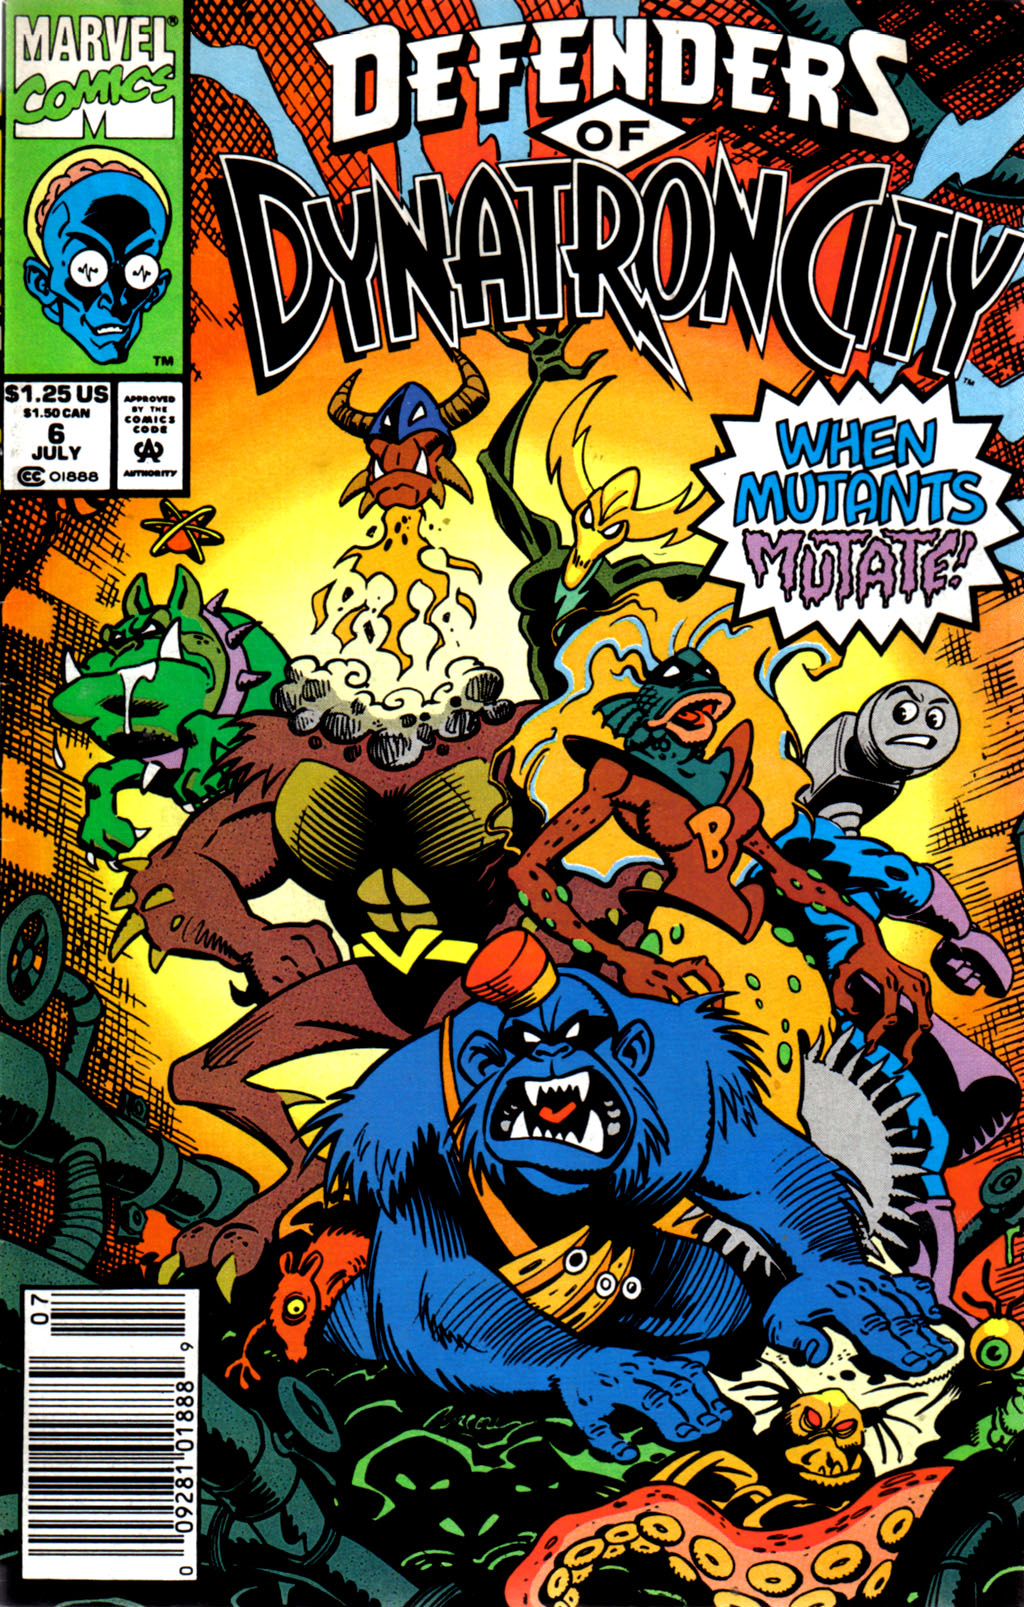 Read online Defenders of Dynatron City comic -  Issue #6 - 1